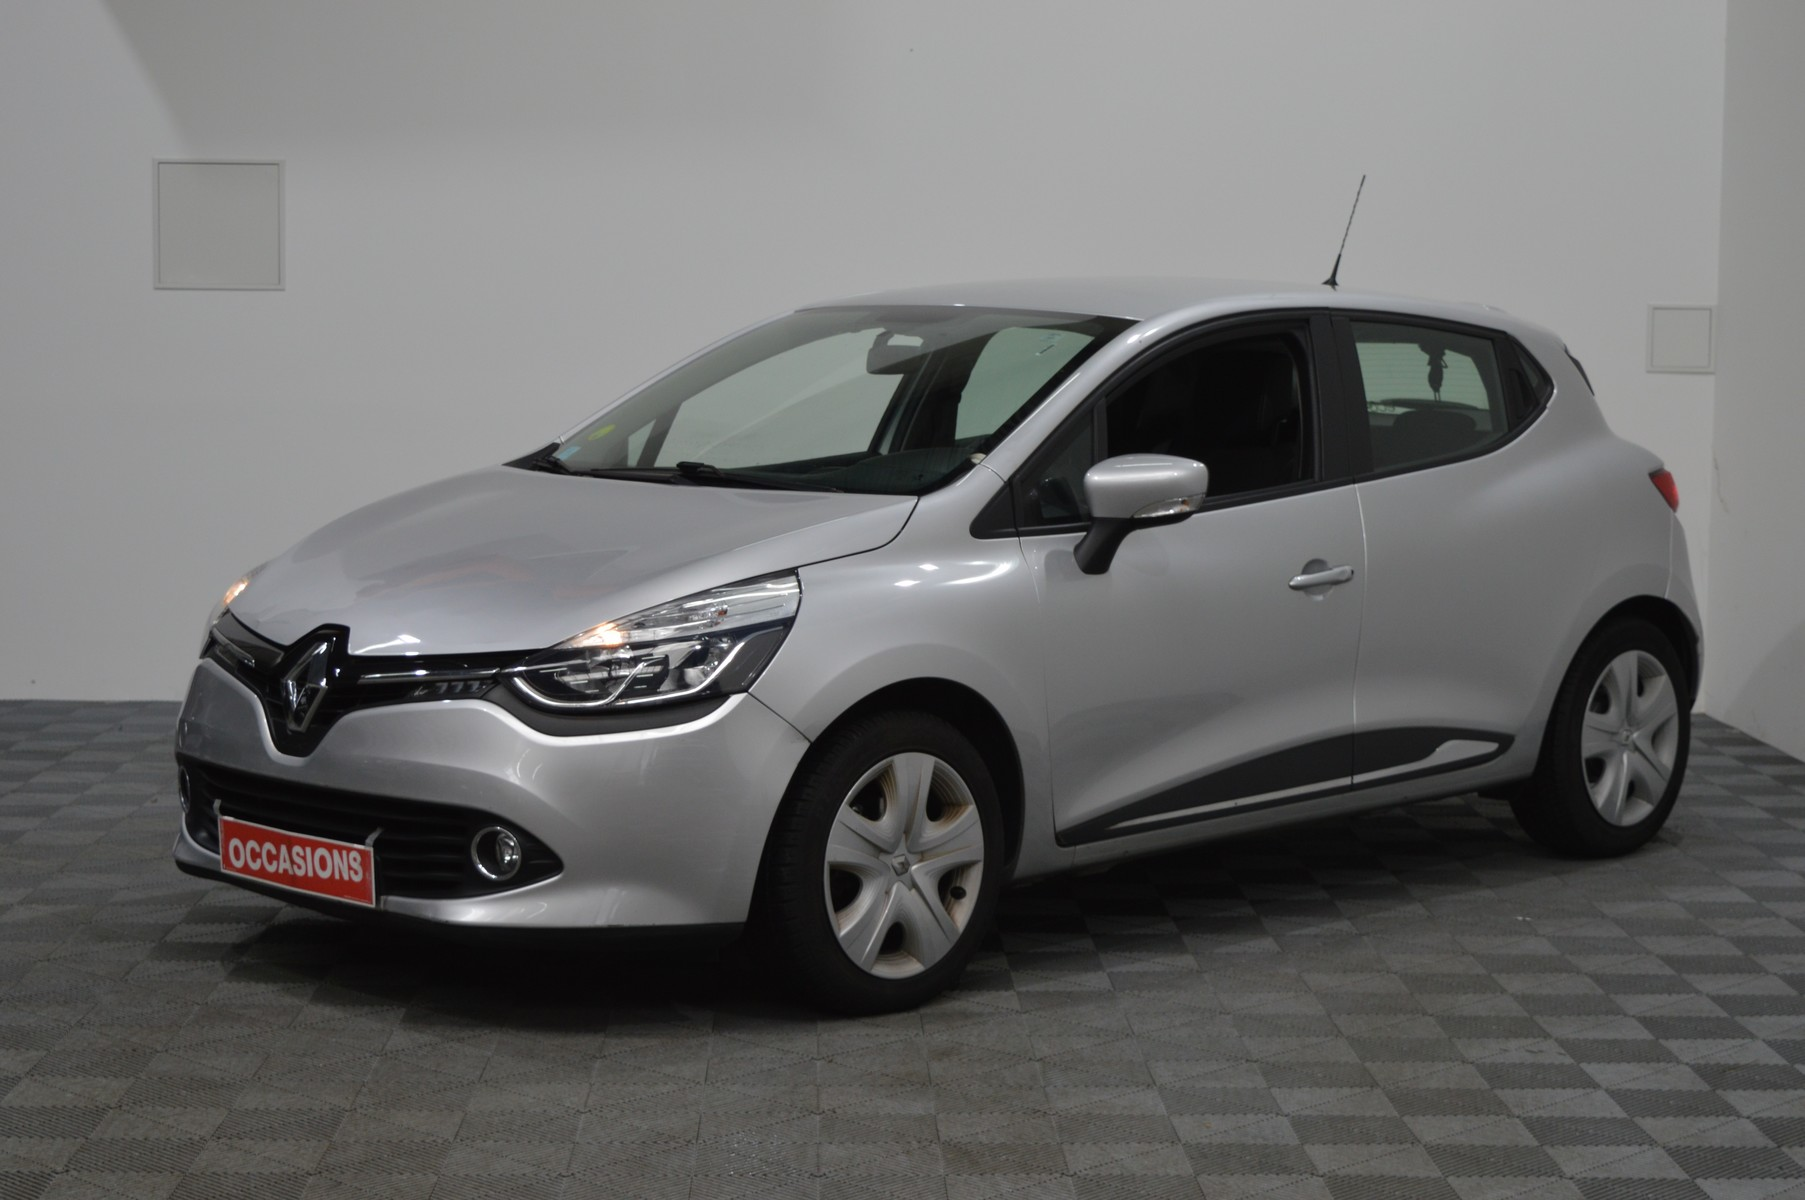 RENAULT CLIO IV BUSINESS dCi 90 Energy eco2 82g Business d'occasion